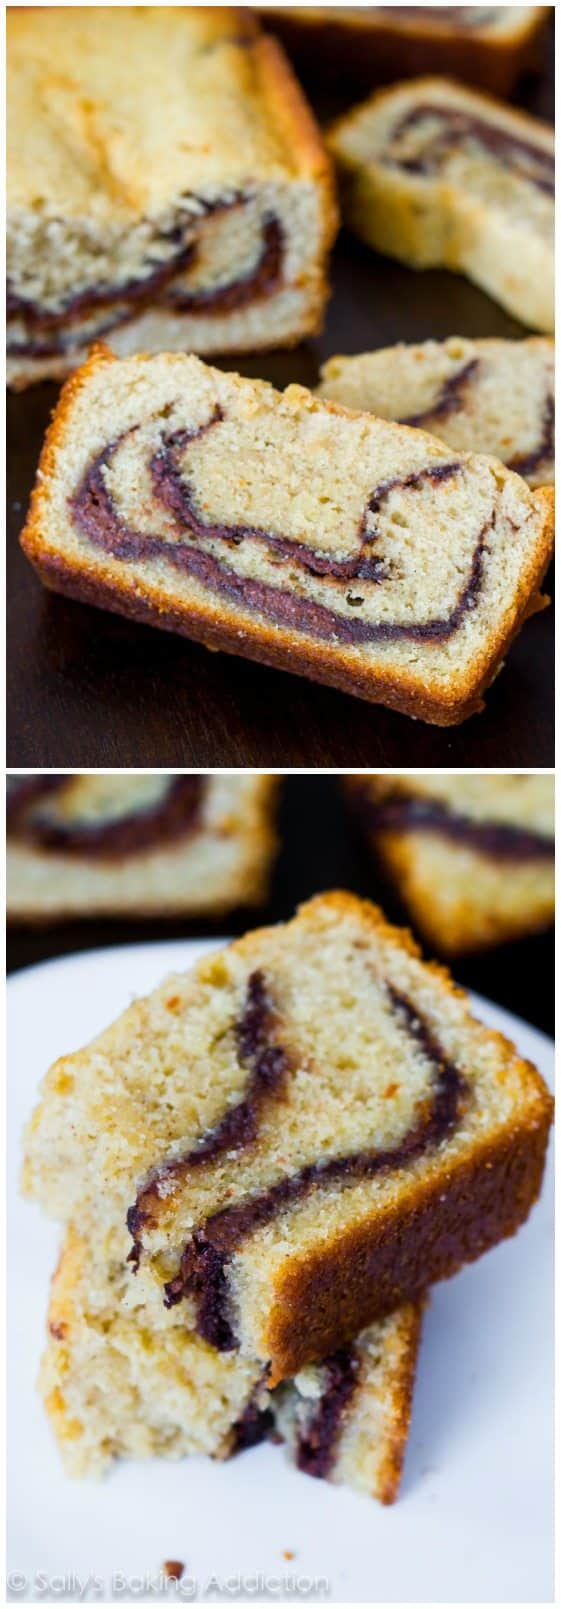 Tender and moist, this pound cake is loaded with buttery flavor and sweet Nutella swirls. It will melt in your mouth!